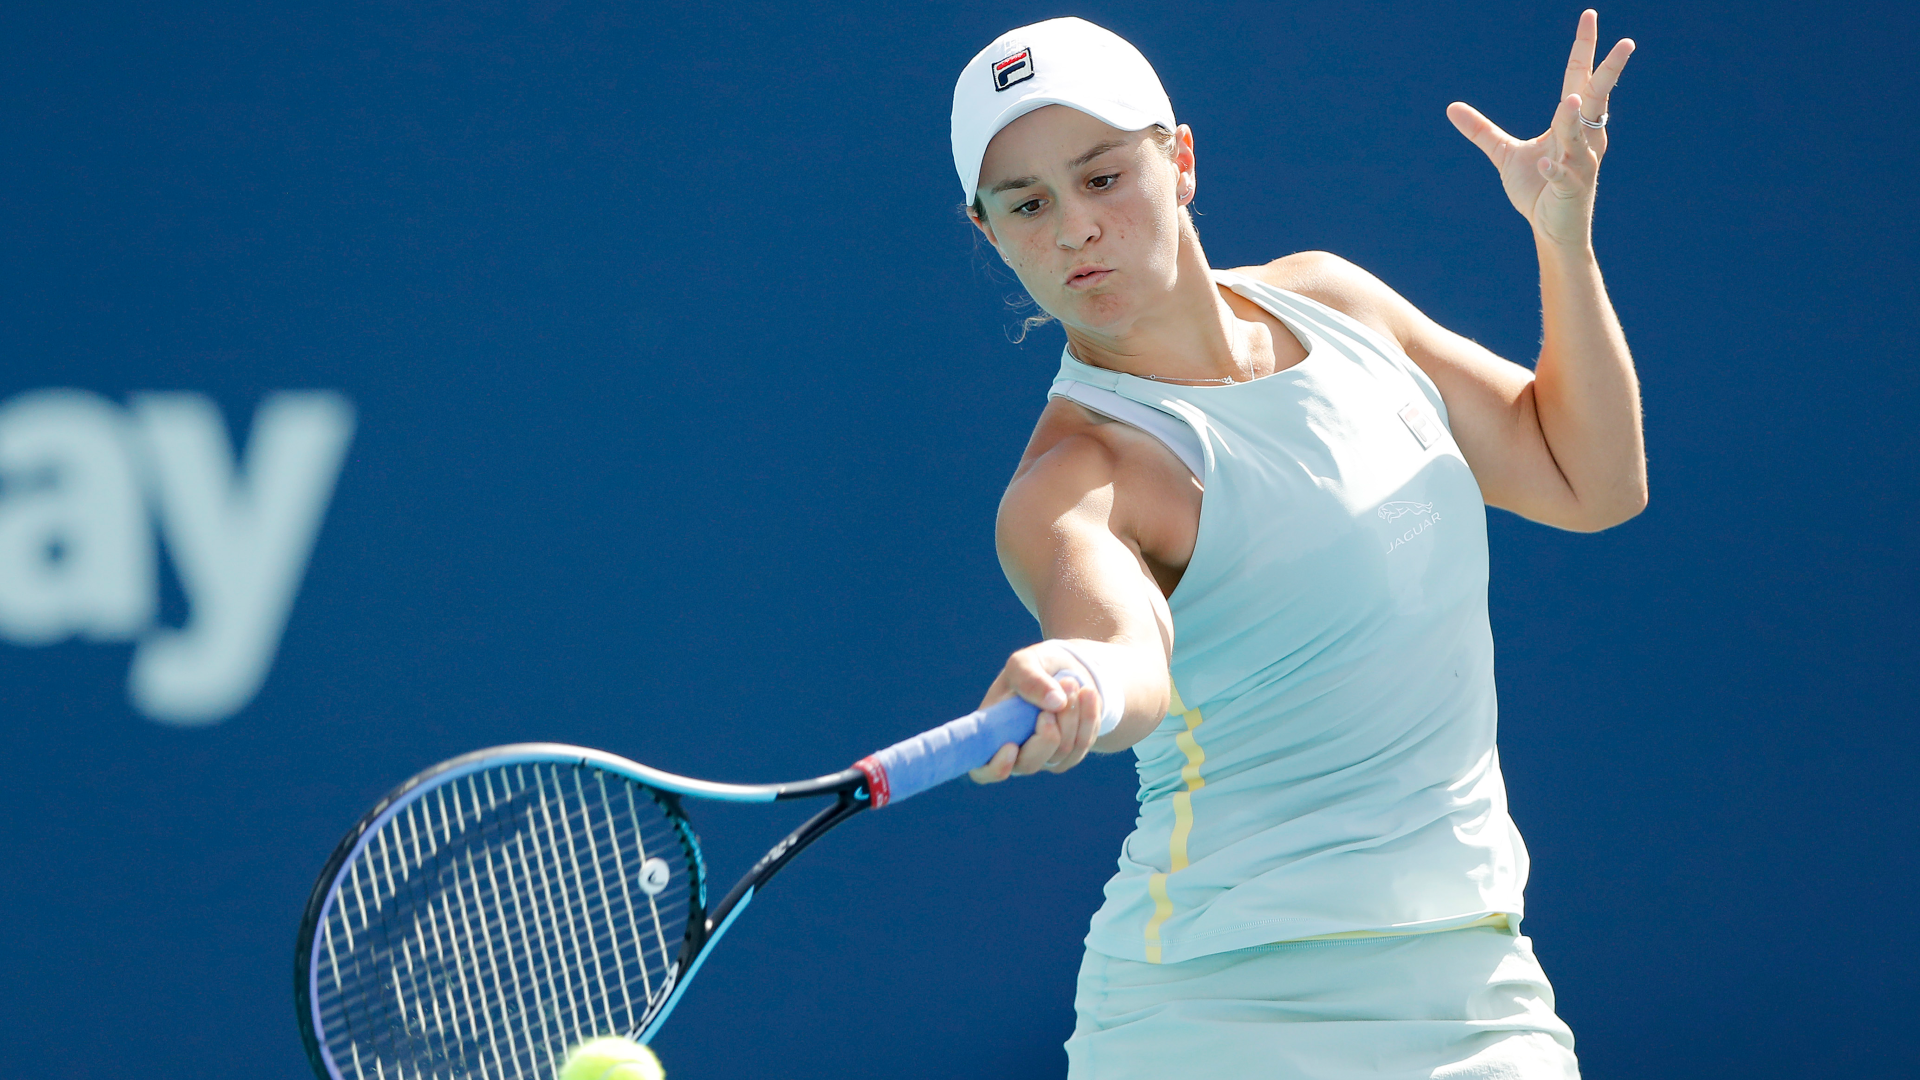 Sofia Kenin, Belinda Bencic and Elise Mertens were all beaten at the Volvo Car Open, where Ash Barty moved through.